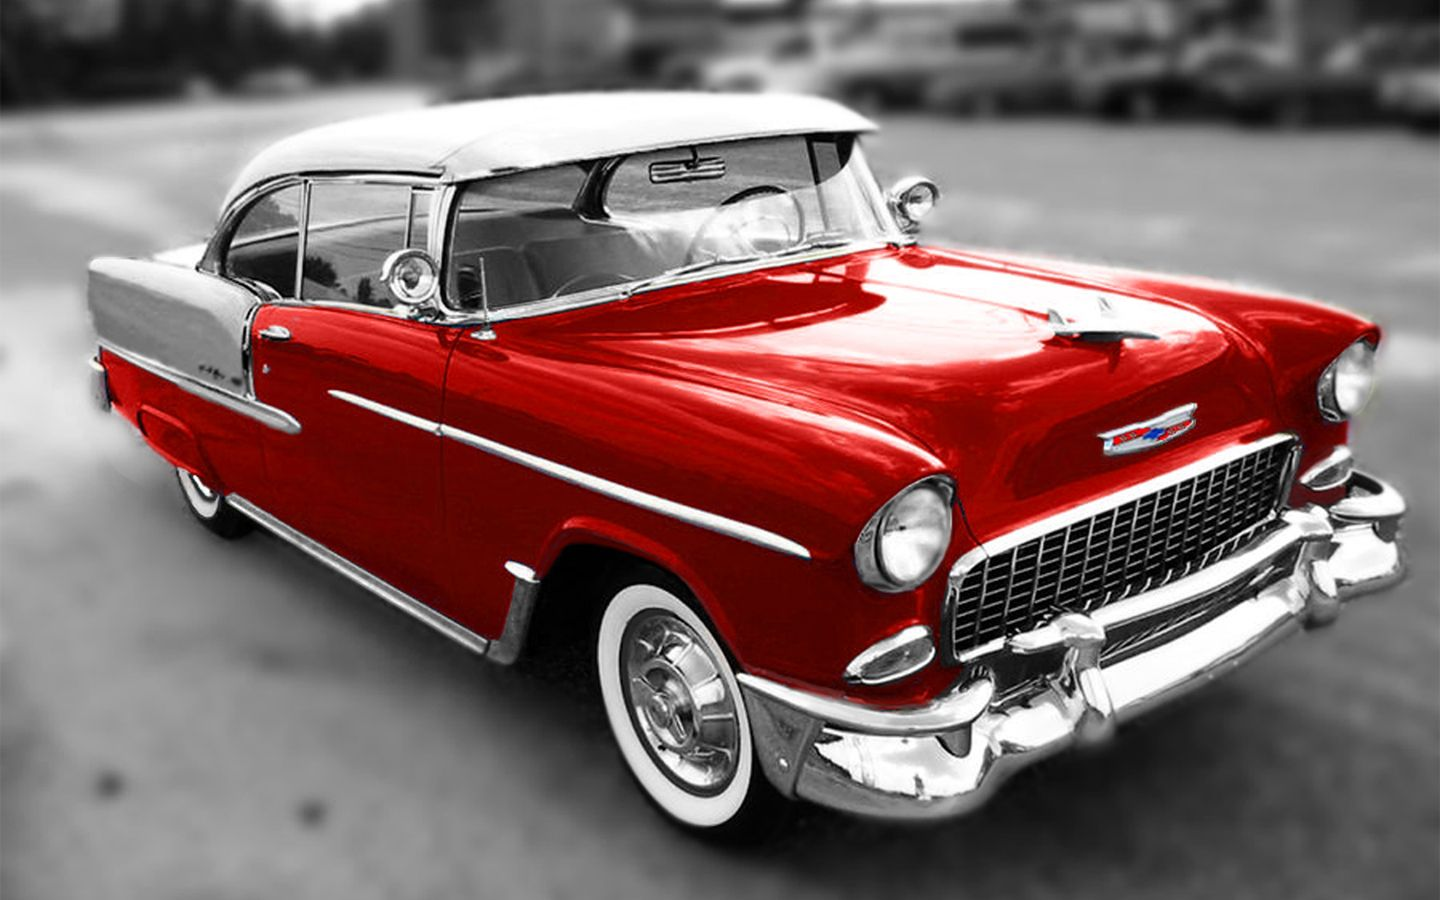 Top 27 Photos For Classic Car Lovers | Pinterest | Bel air ...